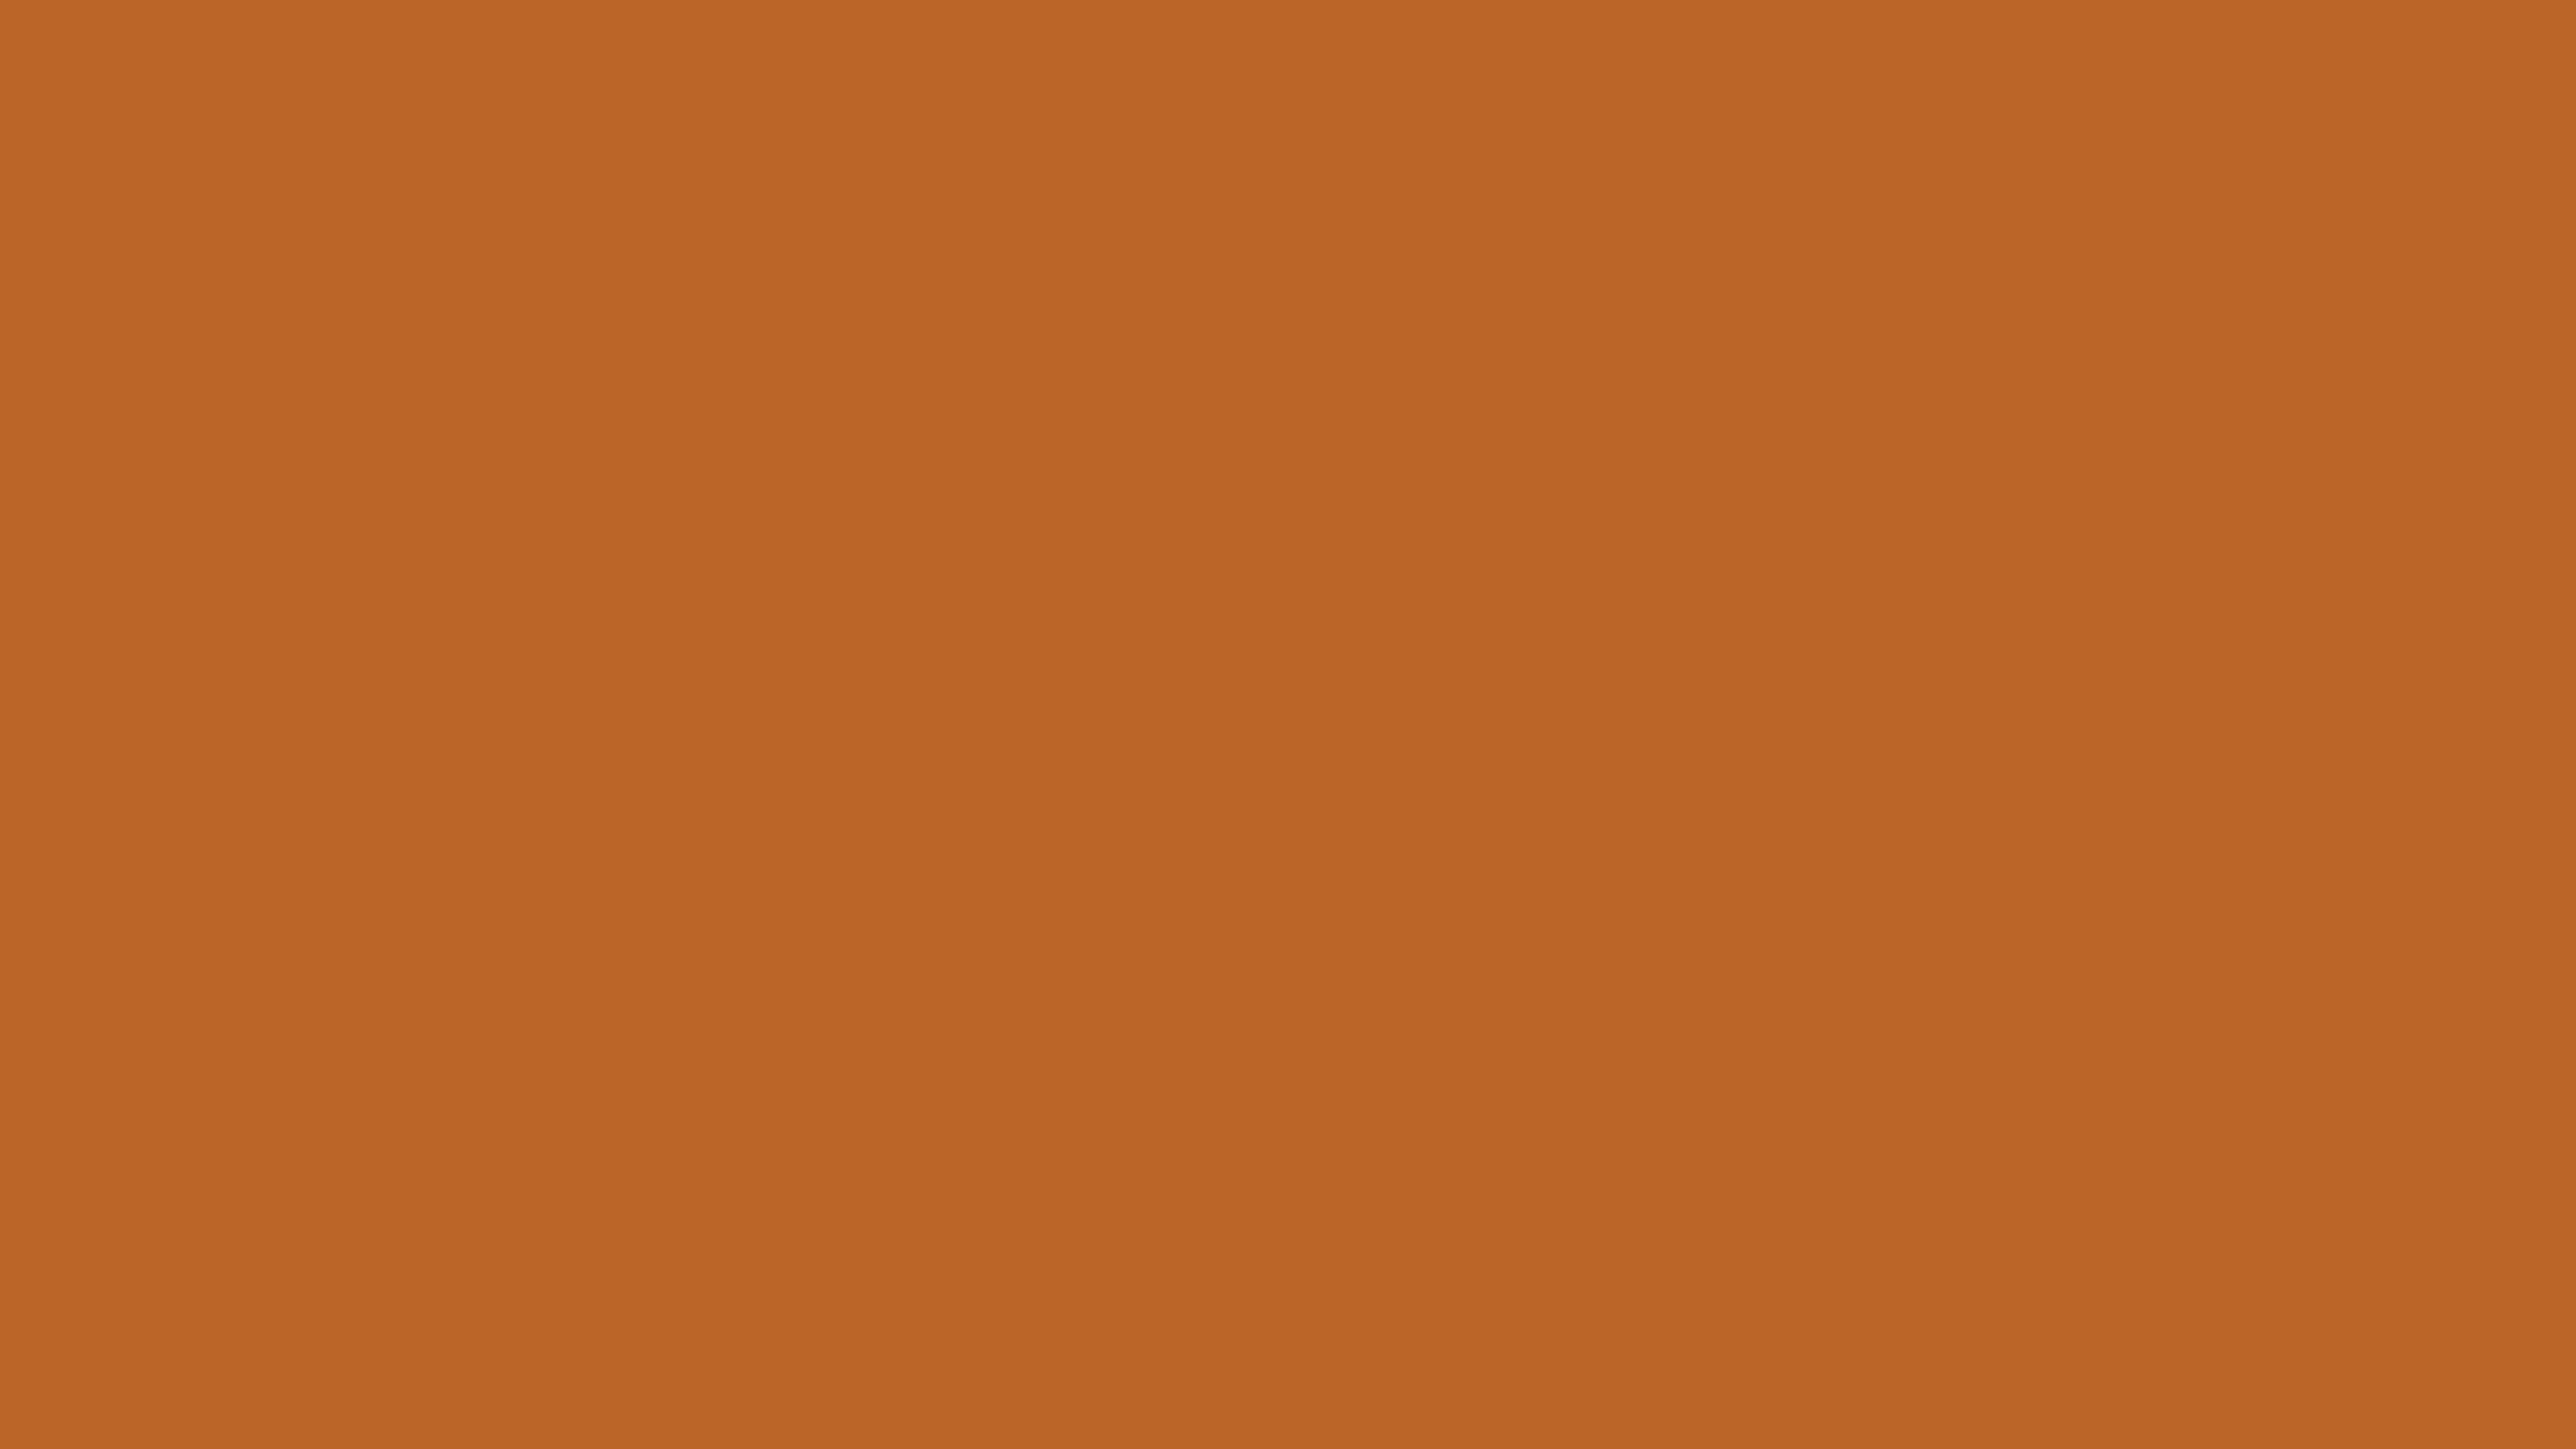 3840x2160 Ruddy Brown Solid Color Background